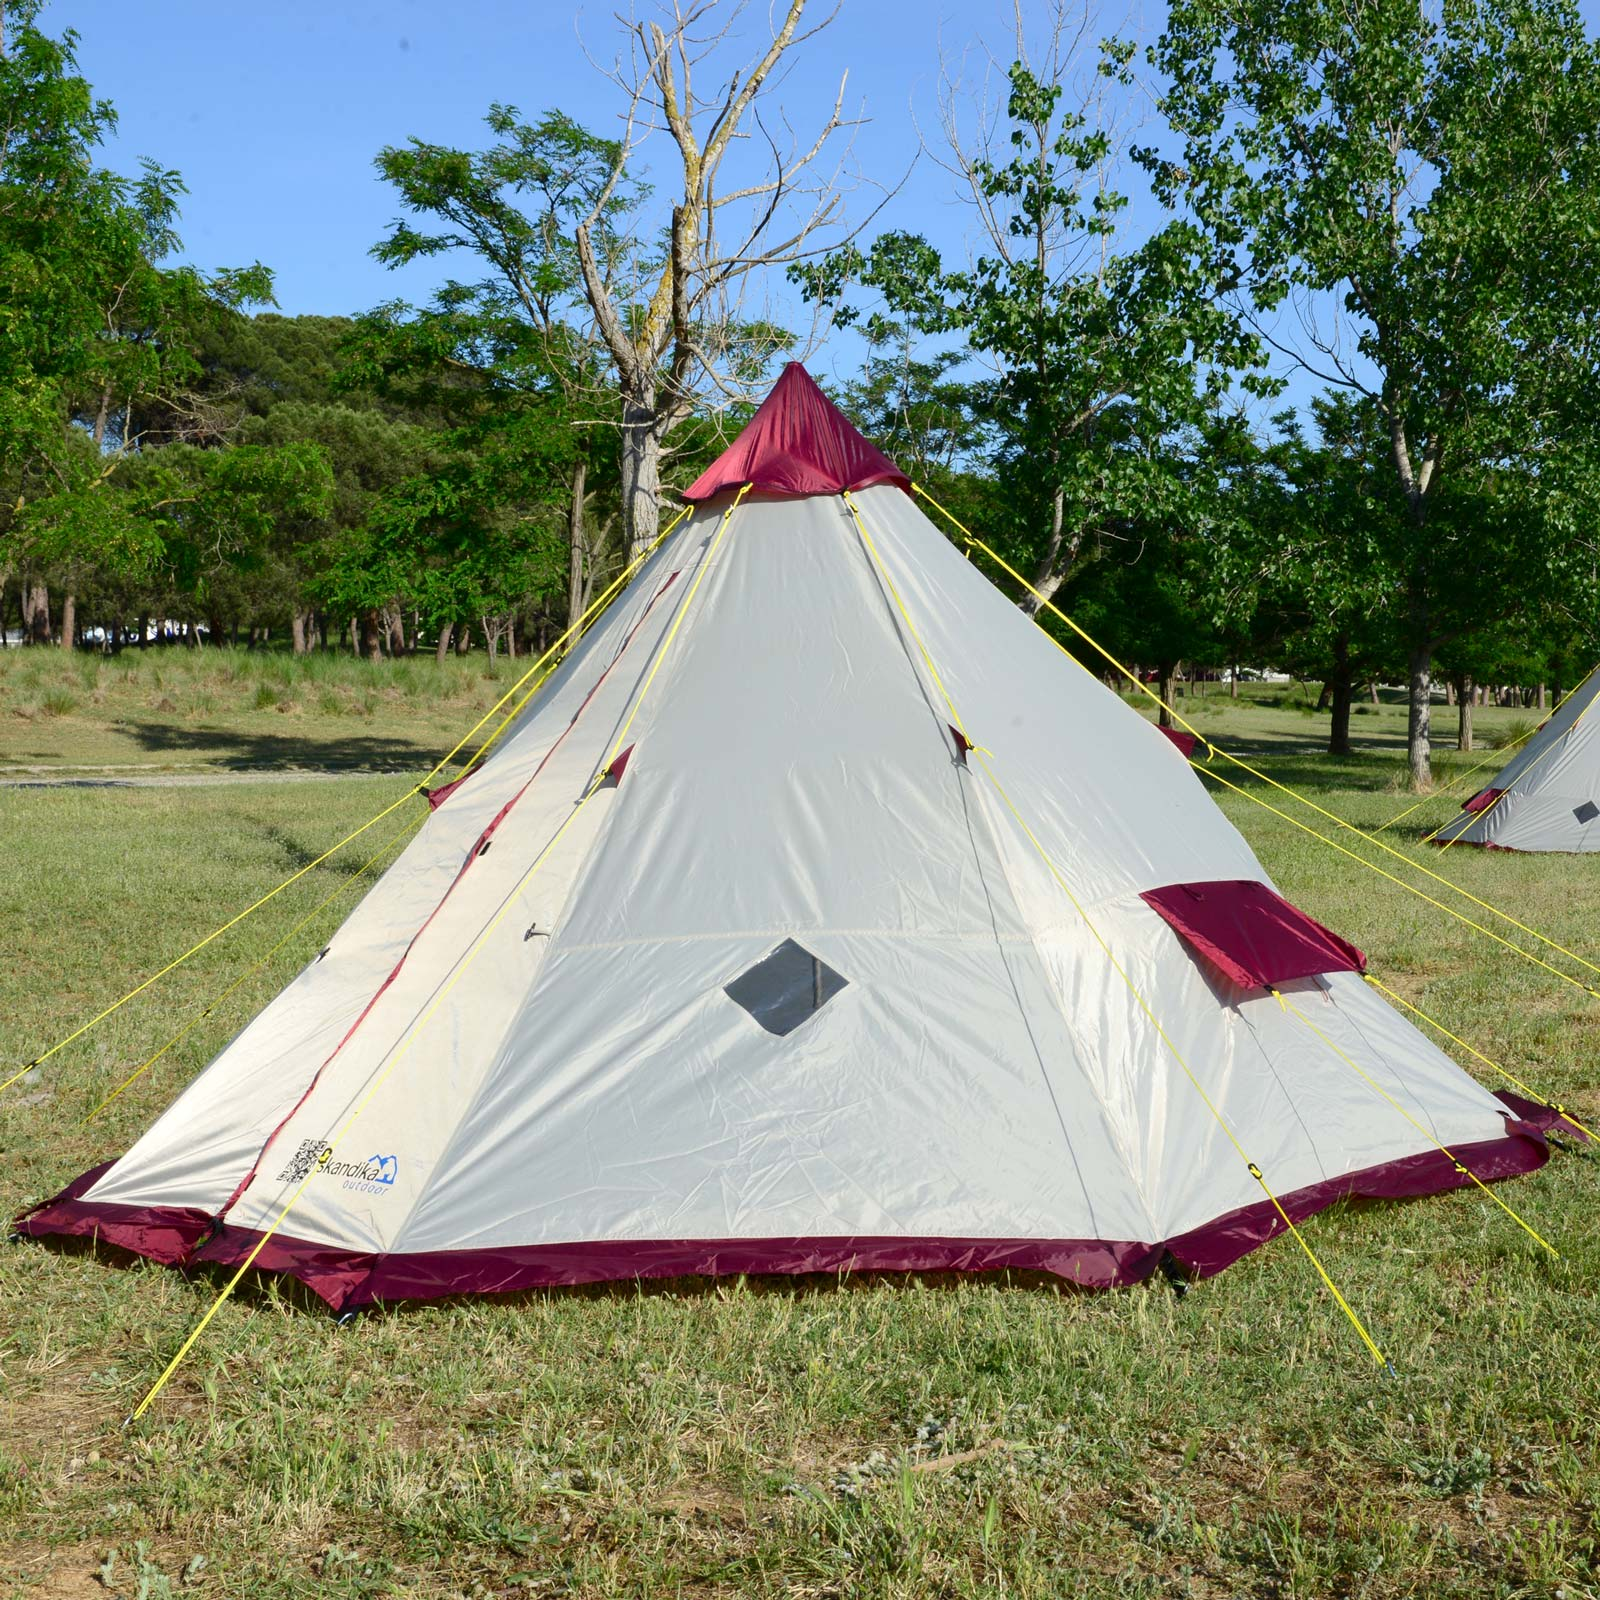 skandika tipii 200 tente camping tipi indien 6 pers 2m hauteur neuf ebay. Black Bedroom Furniture Sets. Home Design Ideas